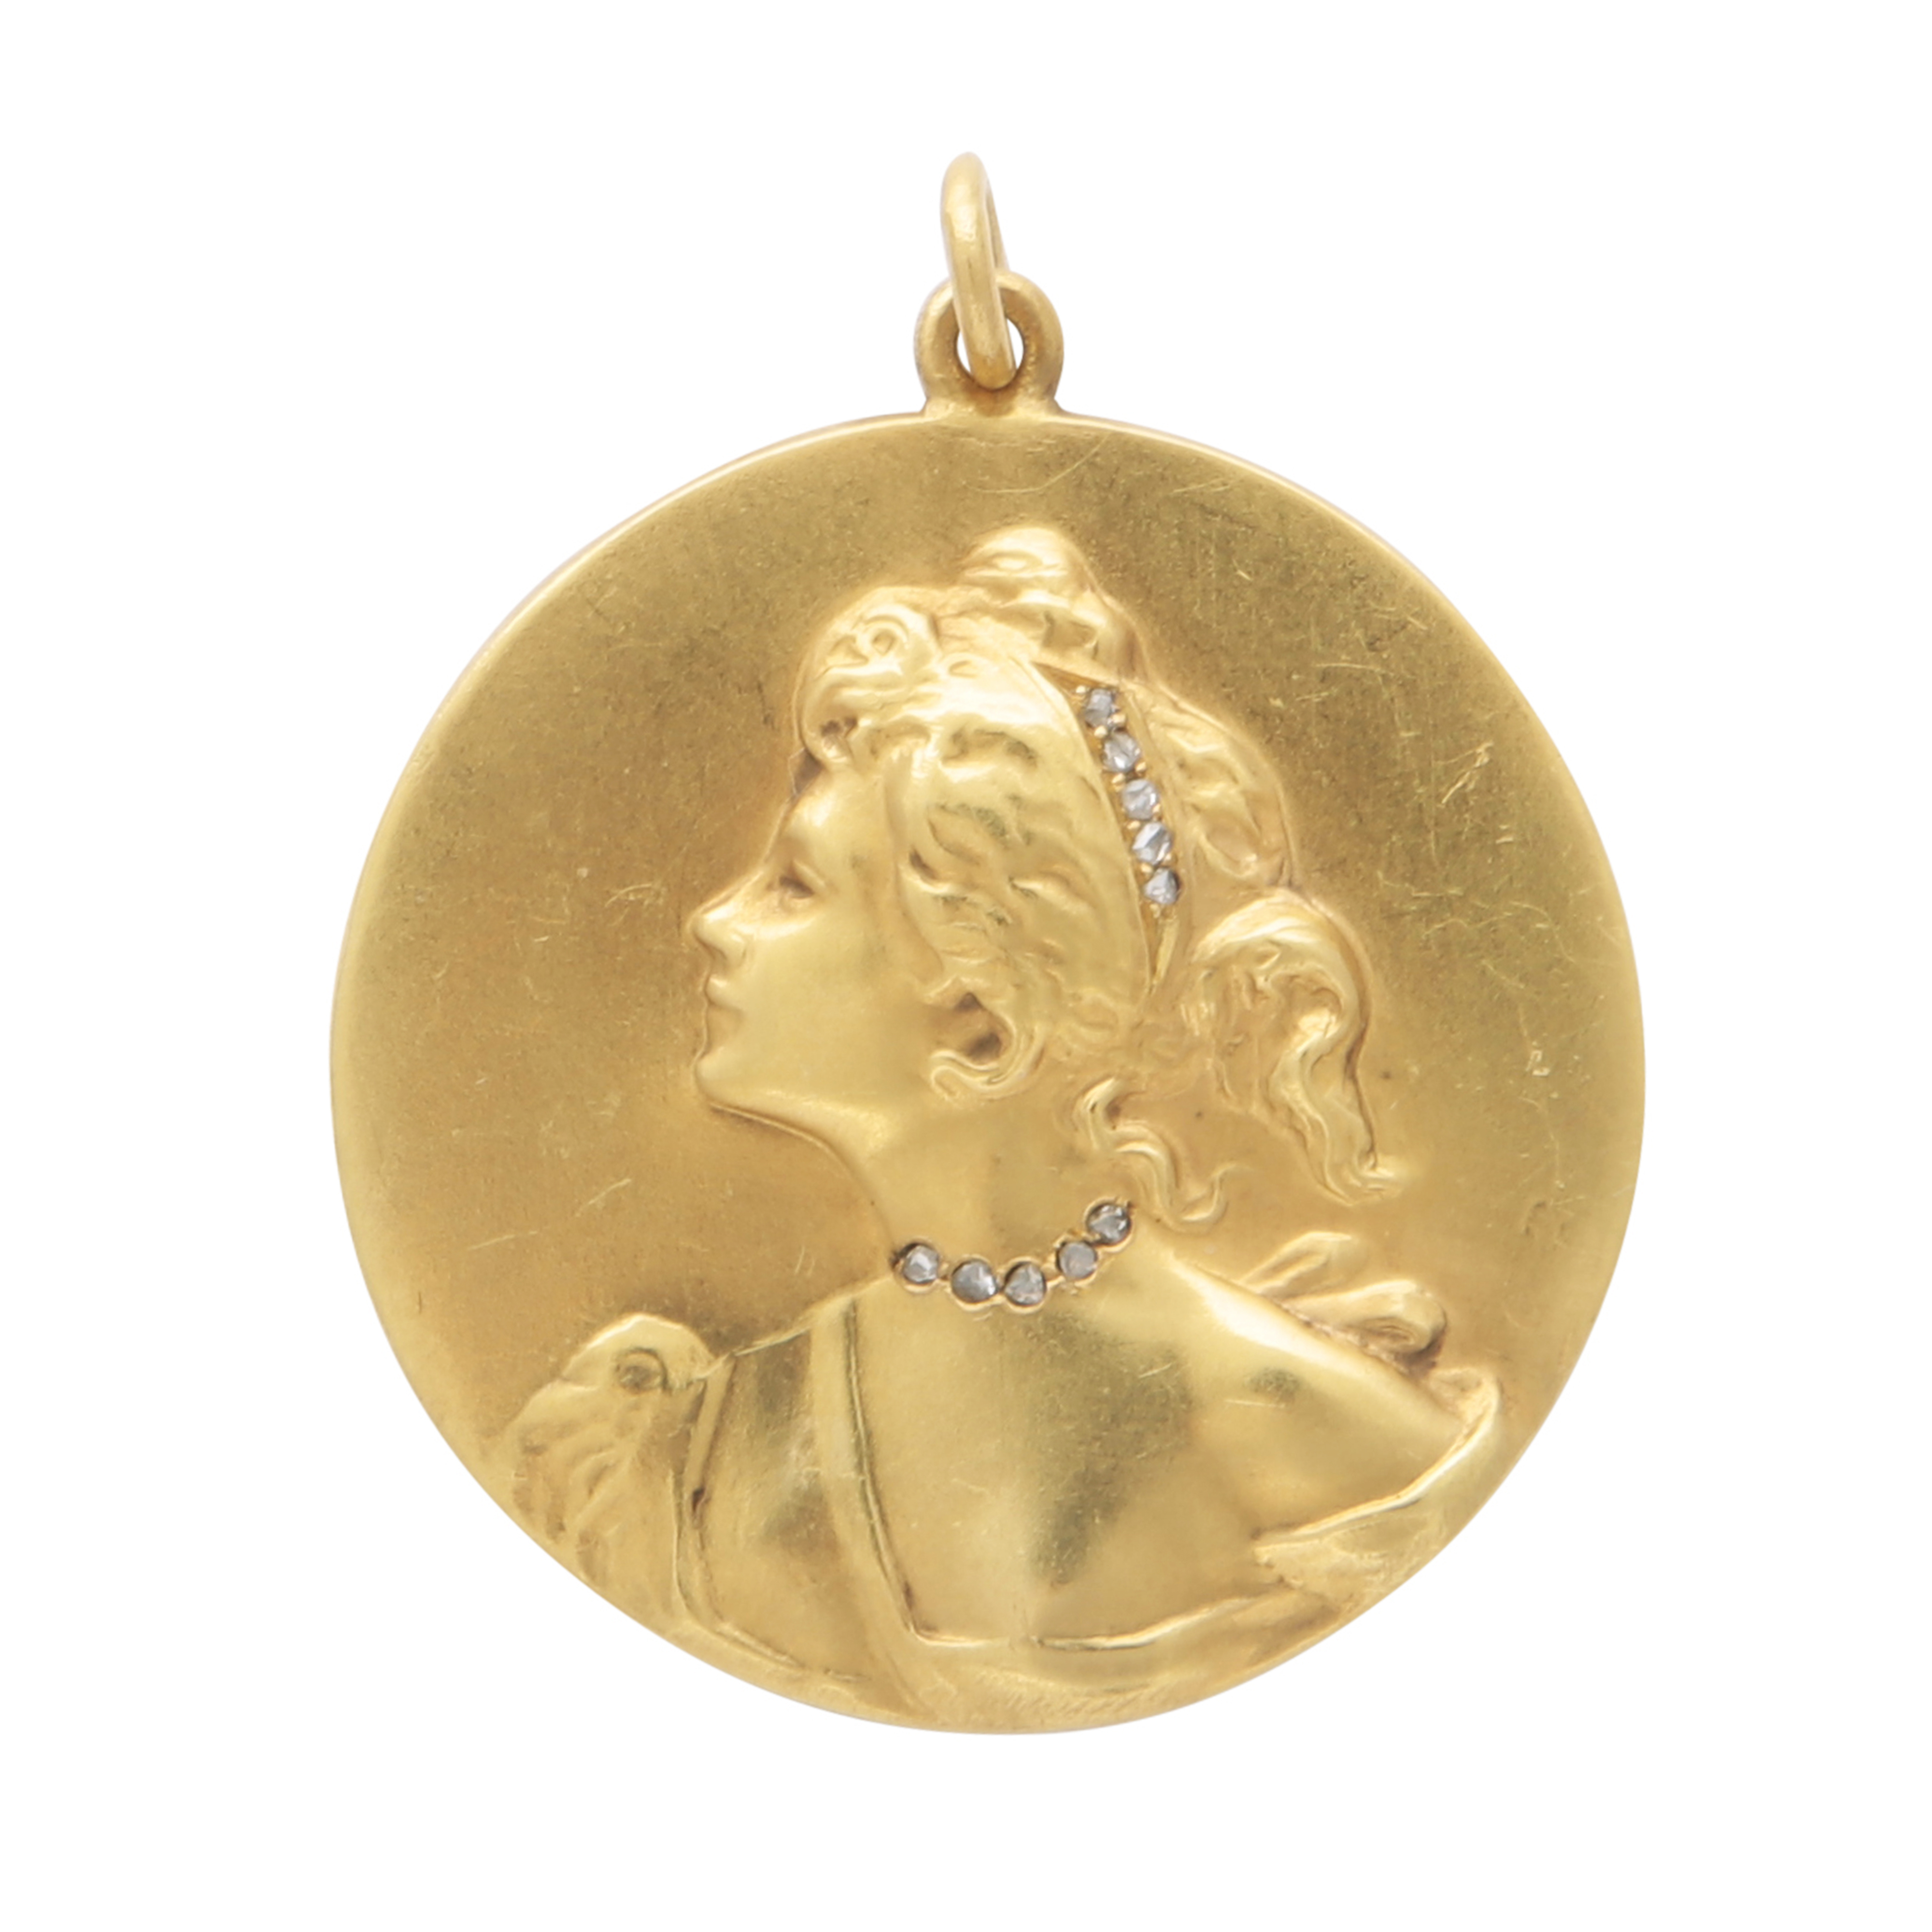 Los 218 - An Art Nouveau jewelled medallion pendant in high carat yellow gold, the circular medallion with